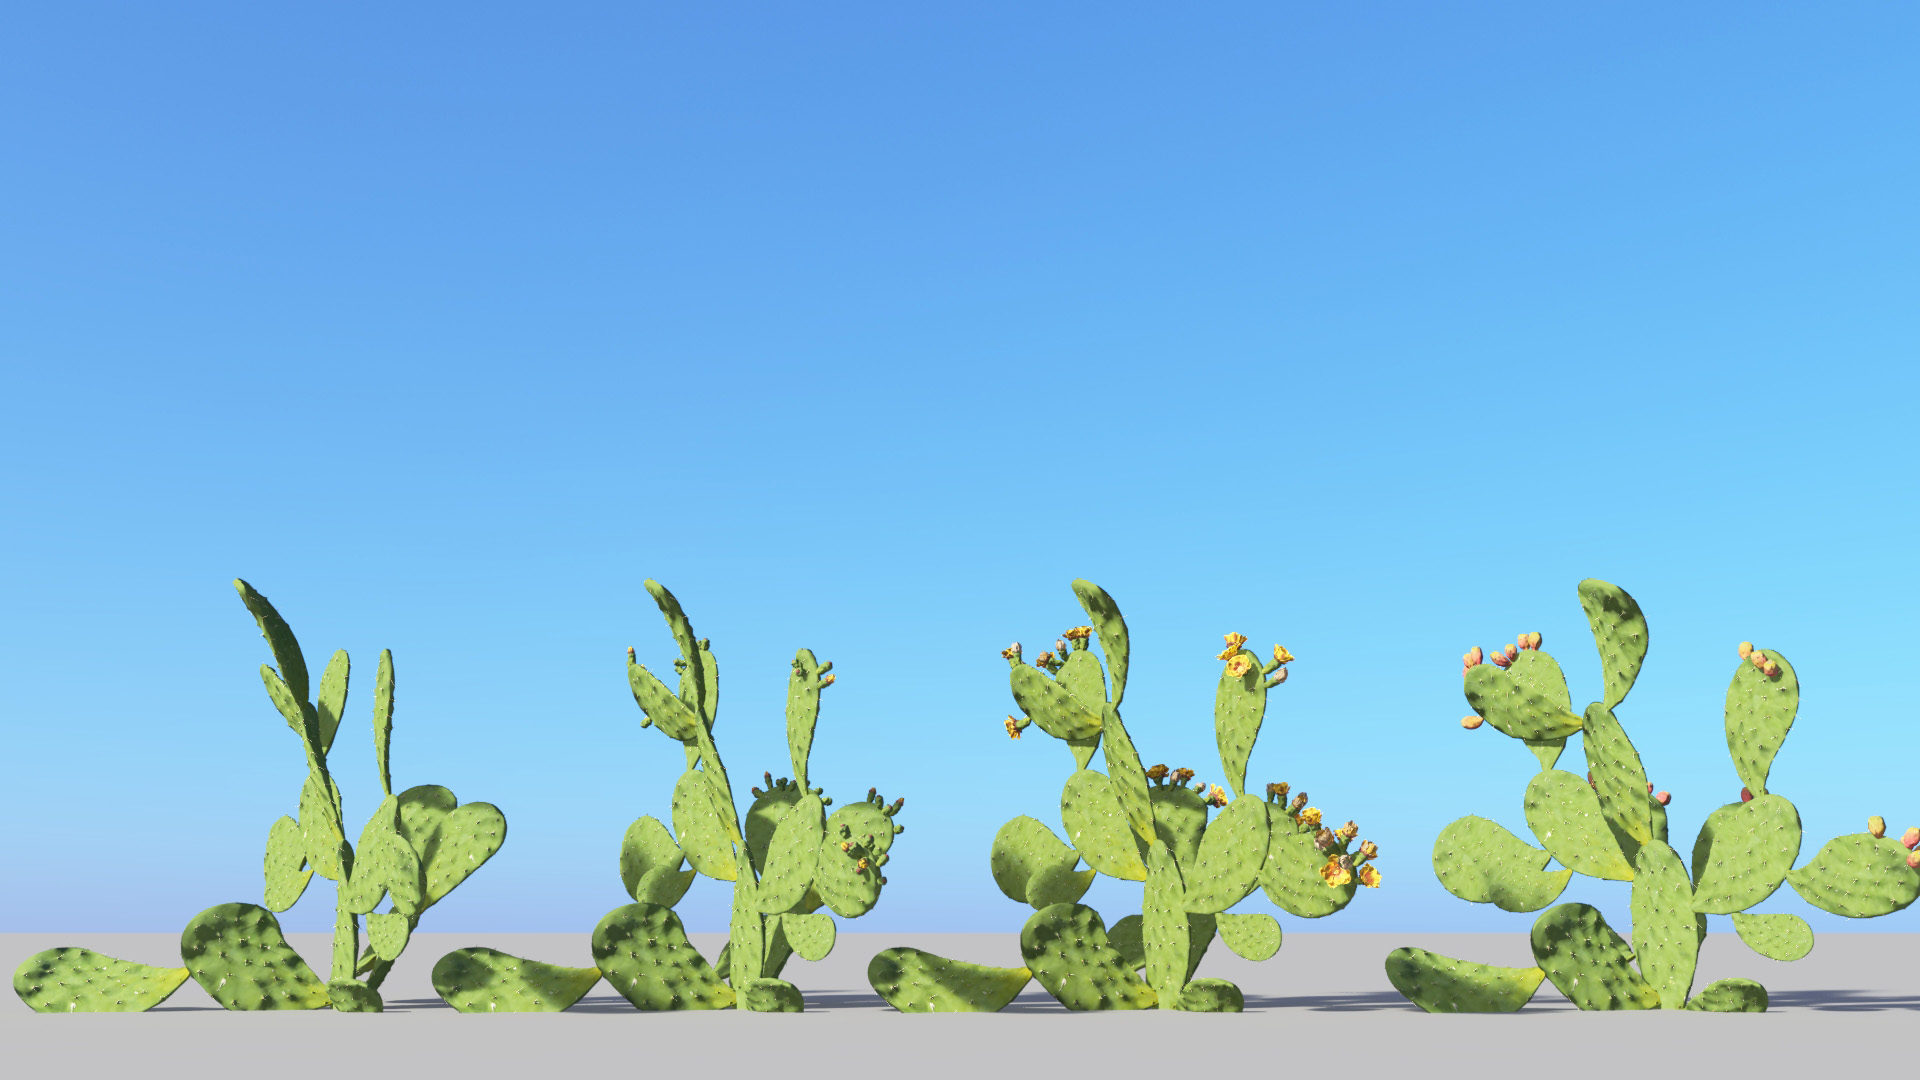 3D model of the Barbary fig Opuntia ficus-indica season variations